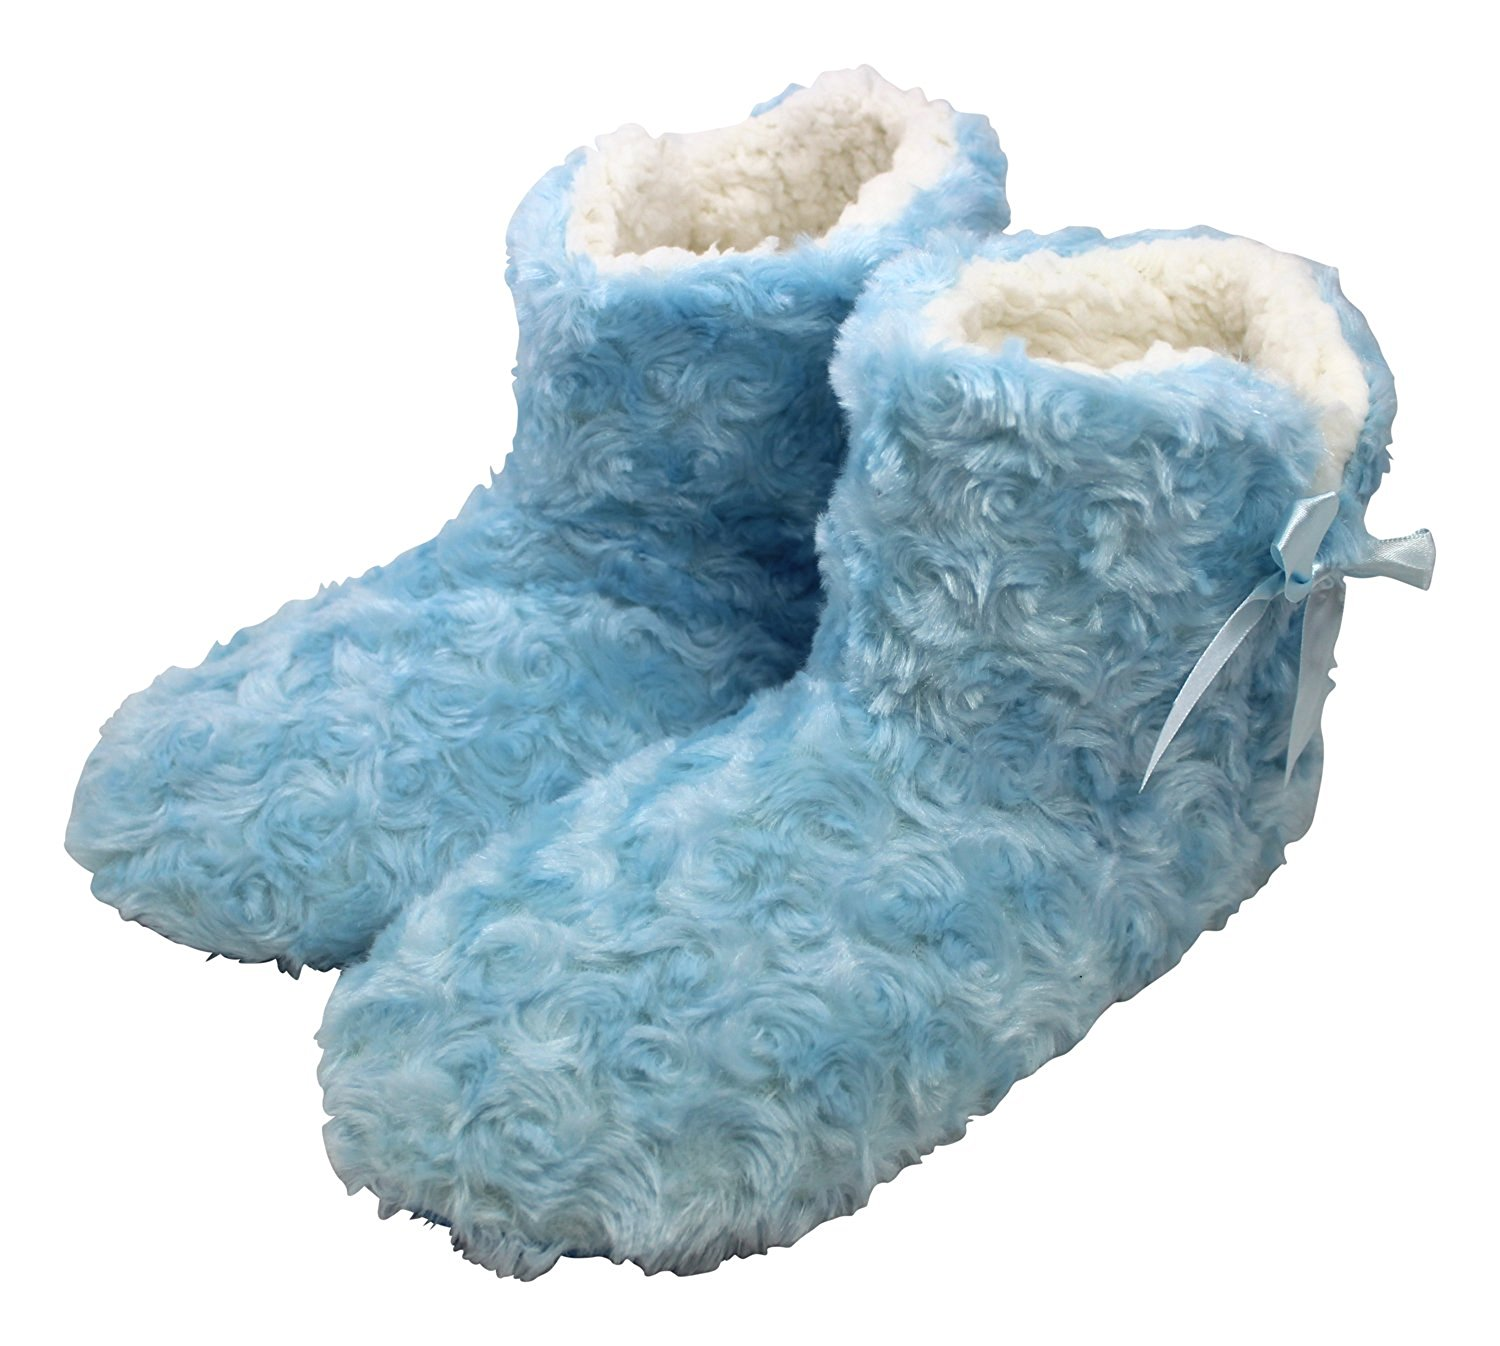 04d8dd359030d Get Quotations · Enimay Women's Slipper Boots Lounge House Relaxed Shoes  Fuzzy Fluffy Soft